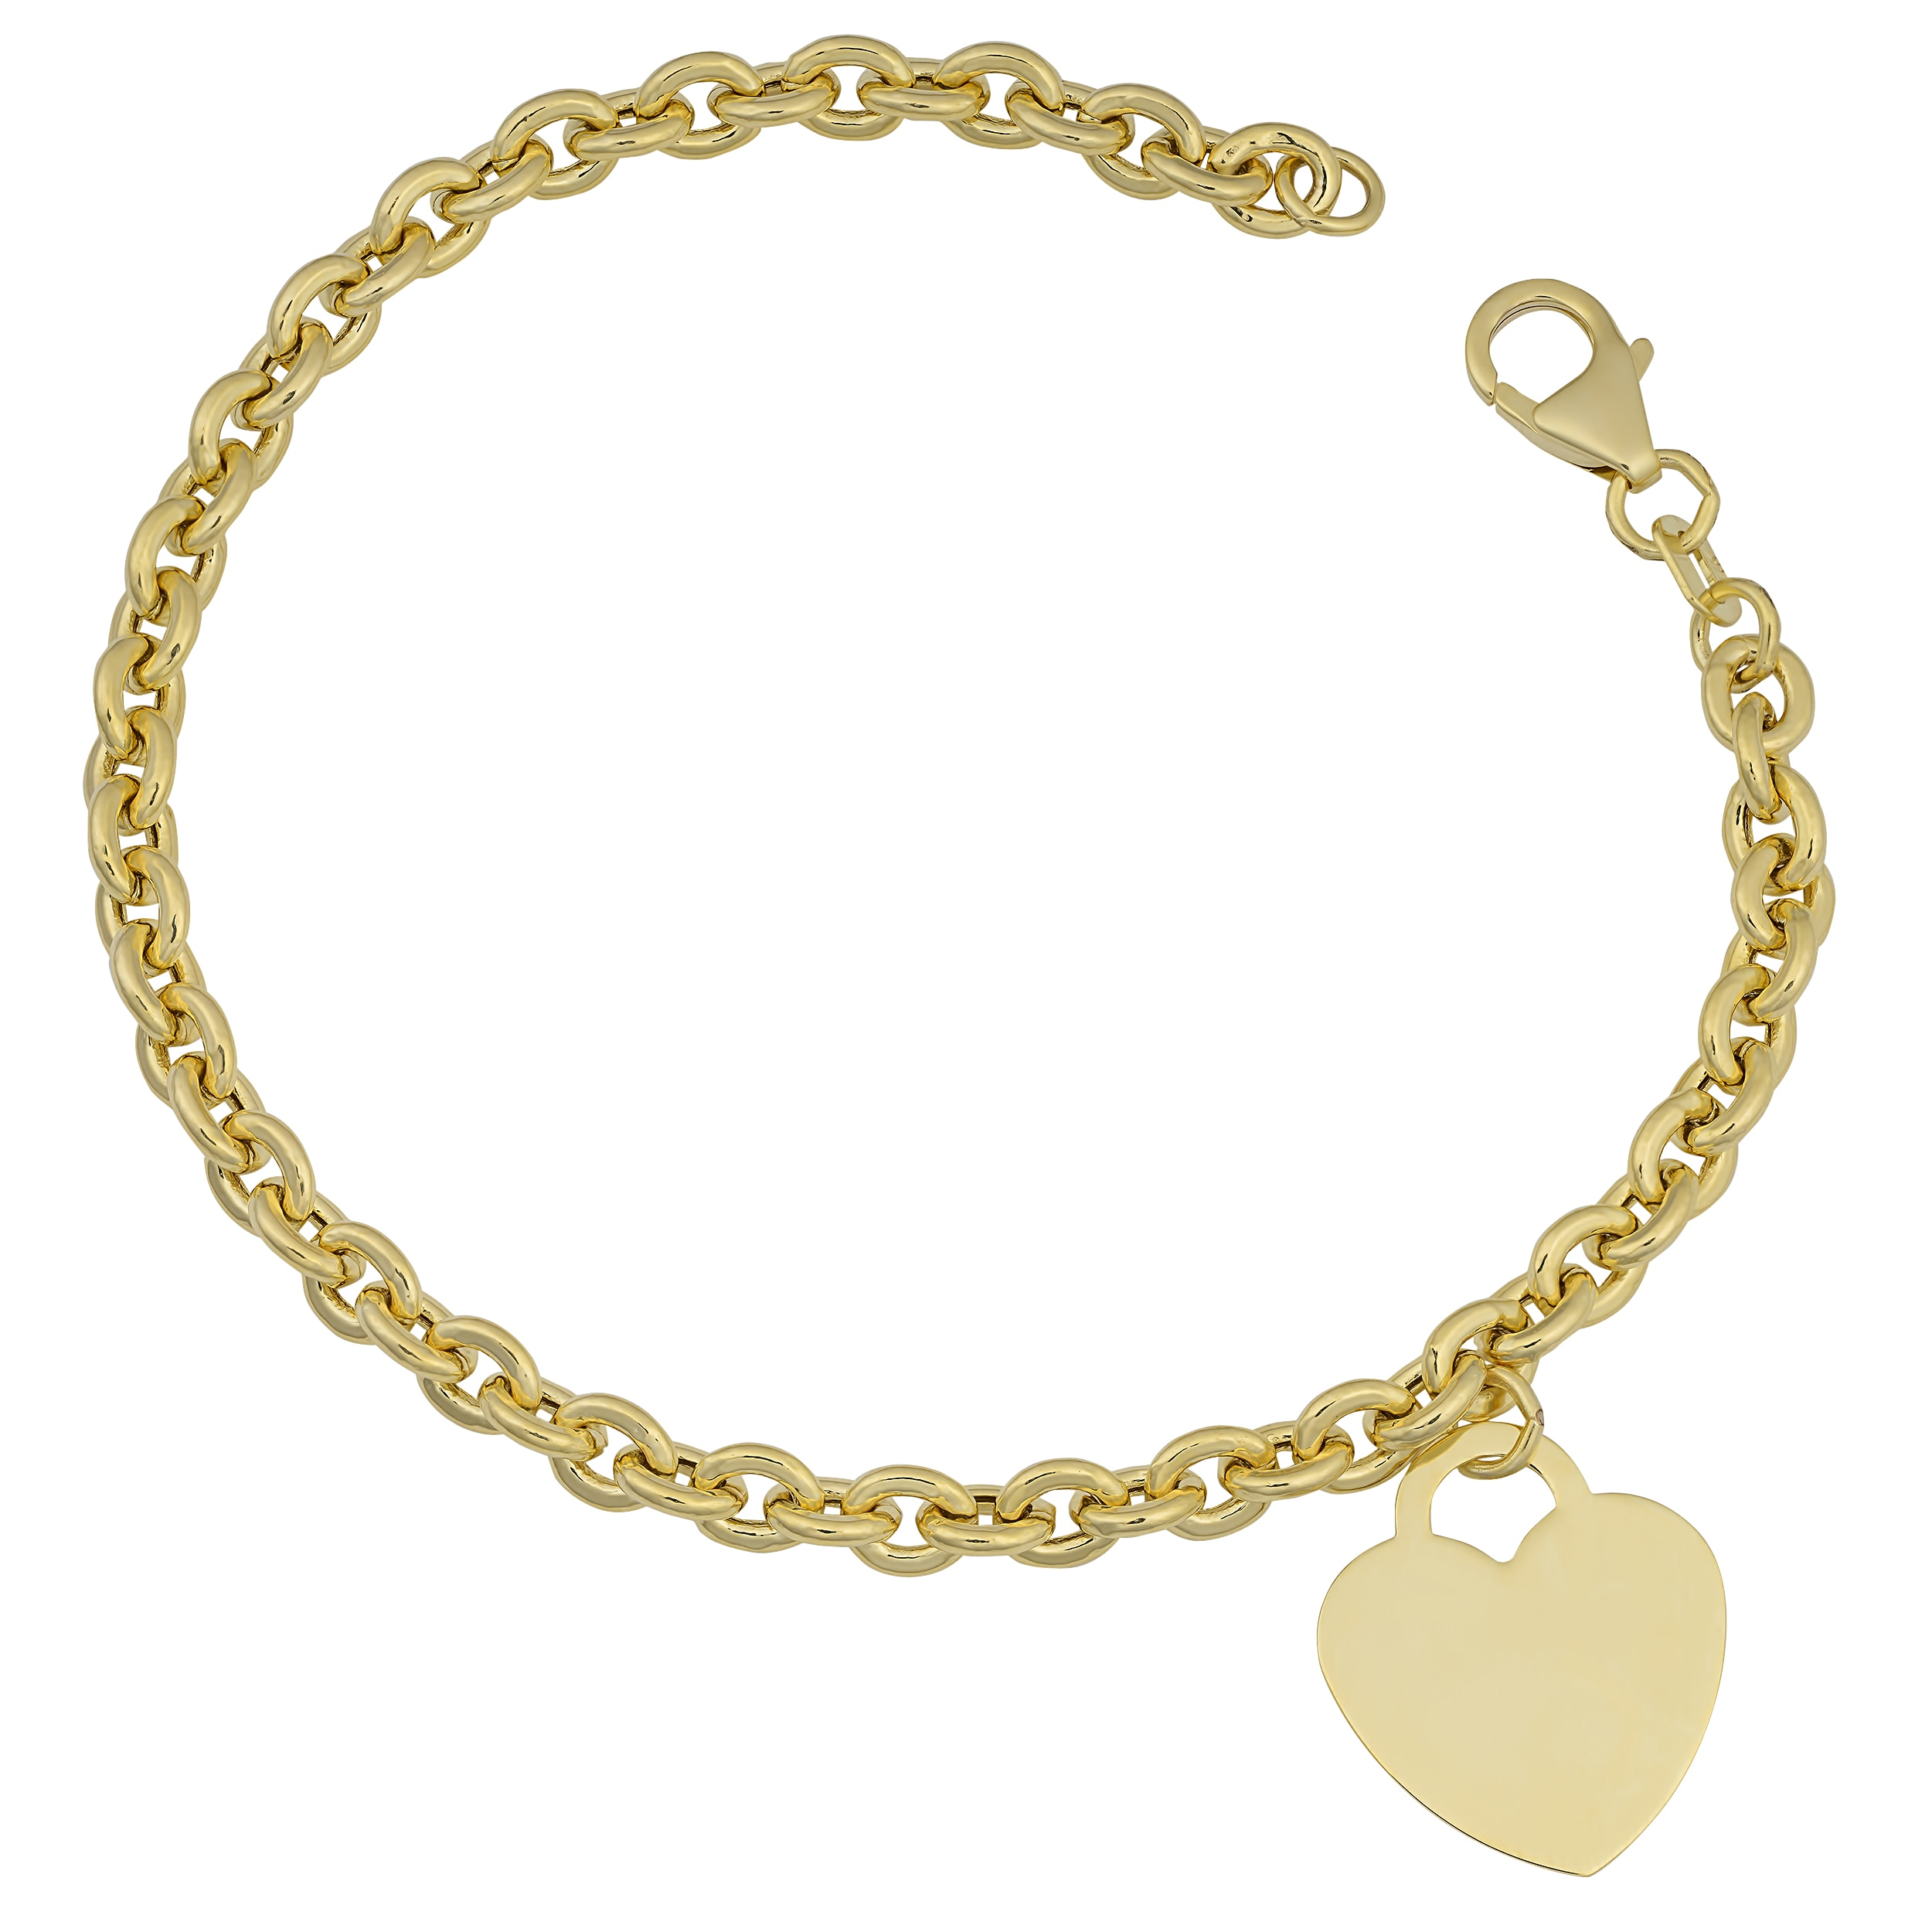 york lyst polished gallery idiom jewelry kate heart of new engraved product bracelet bangle gold spade